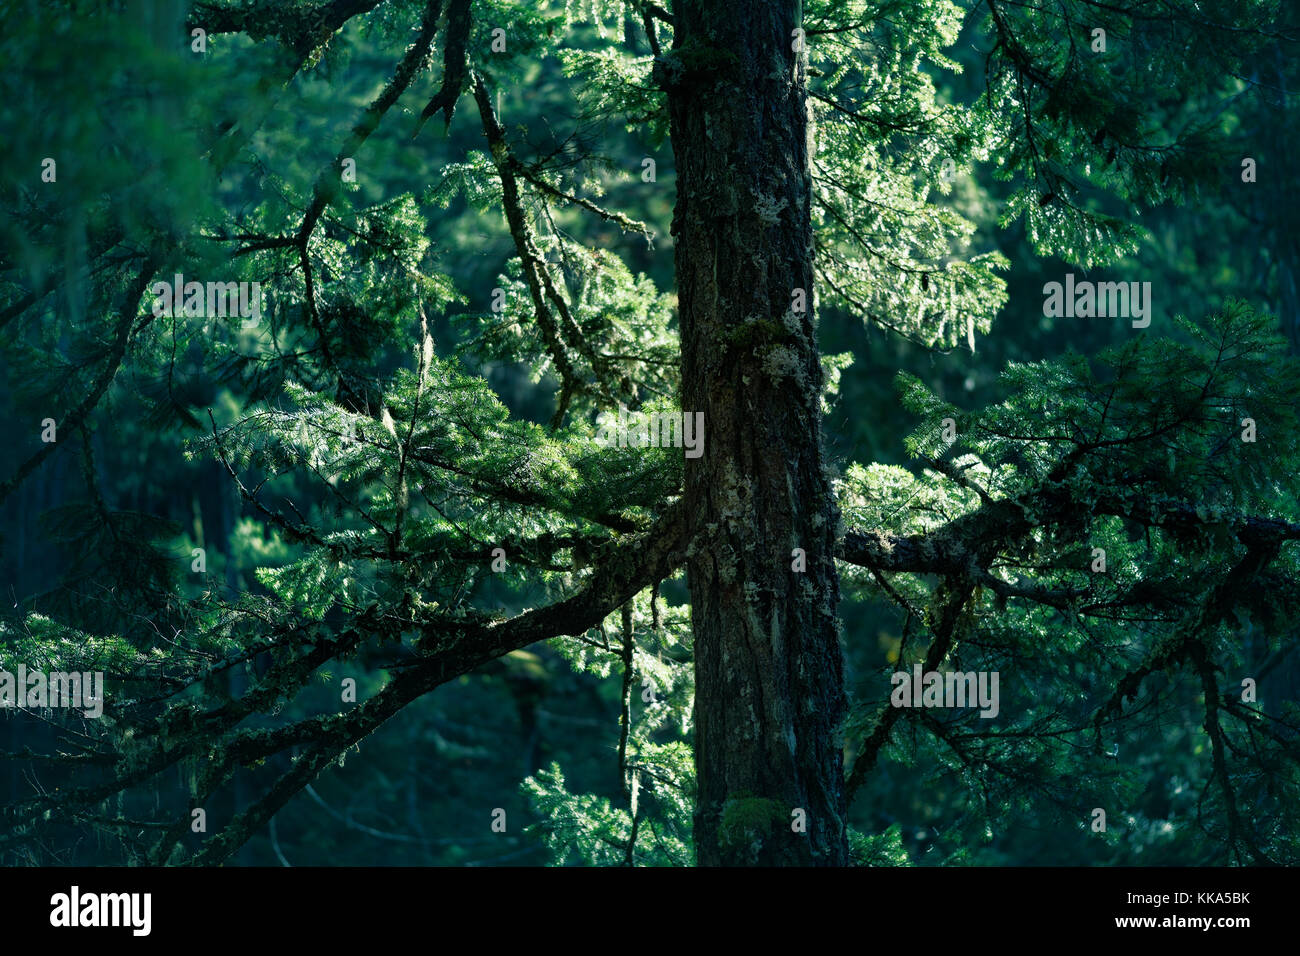 Closeup of Duglas fir tree branches glowing in sunlight in deep green forest. Vancouver Island, British Columbia, - Stock Image